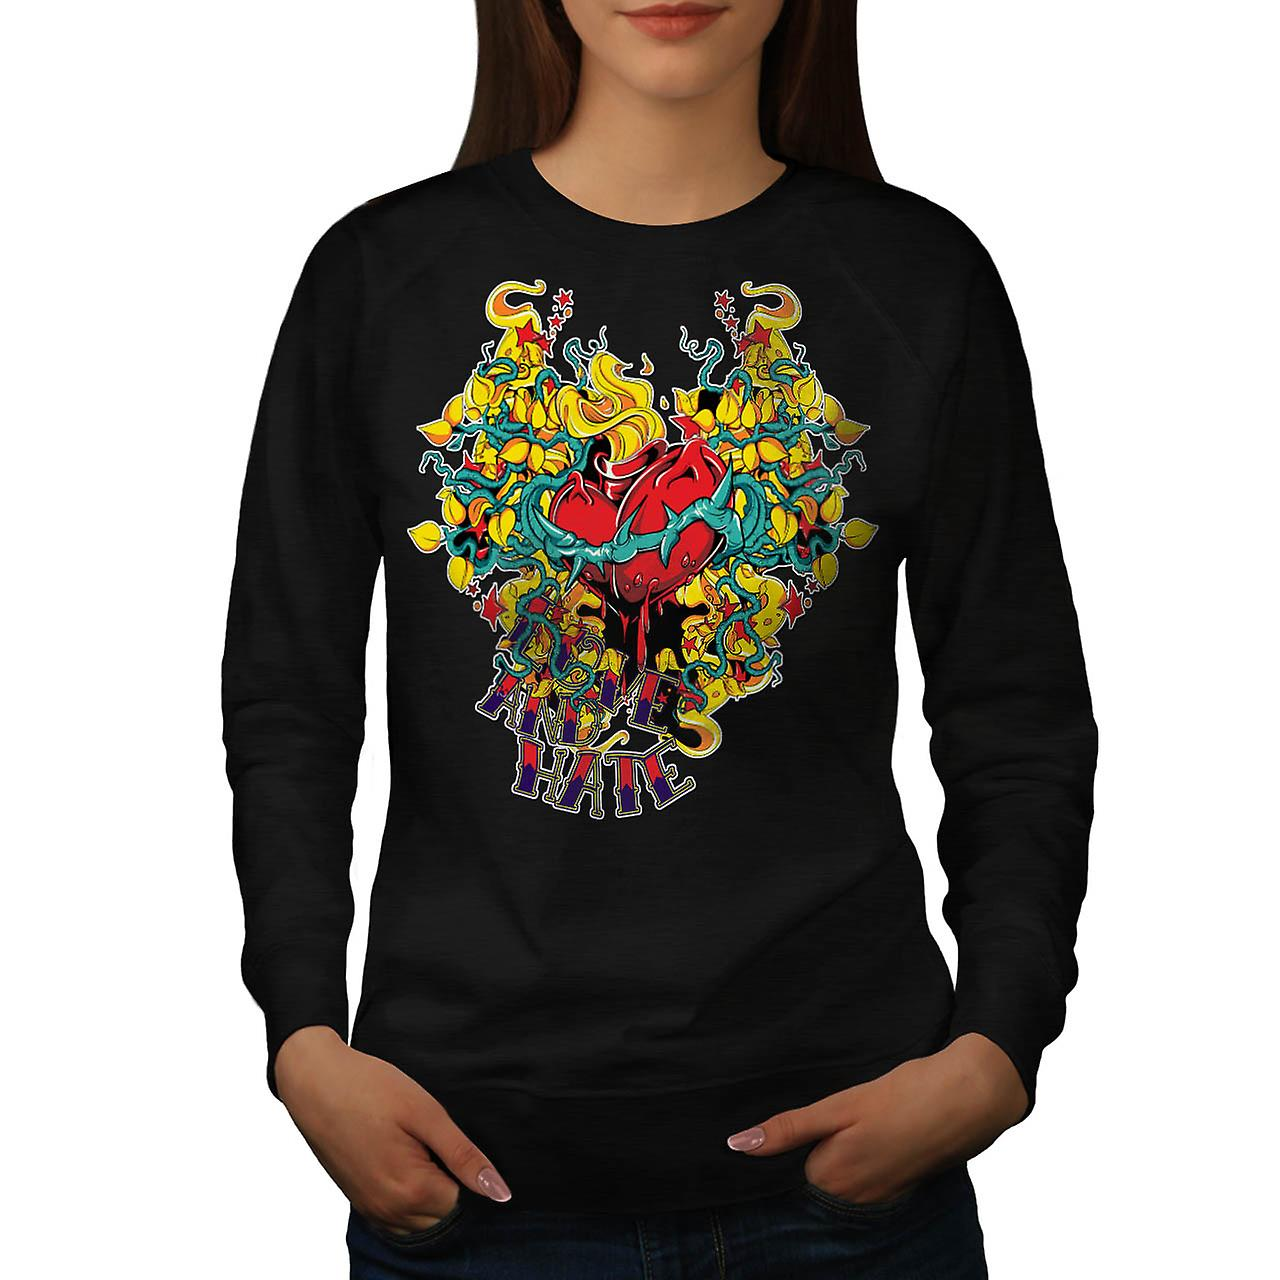 Love And Hate Heart Beat Life Women Black Sweatshirt | Wellcoda